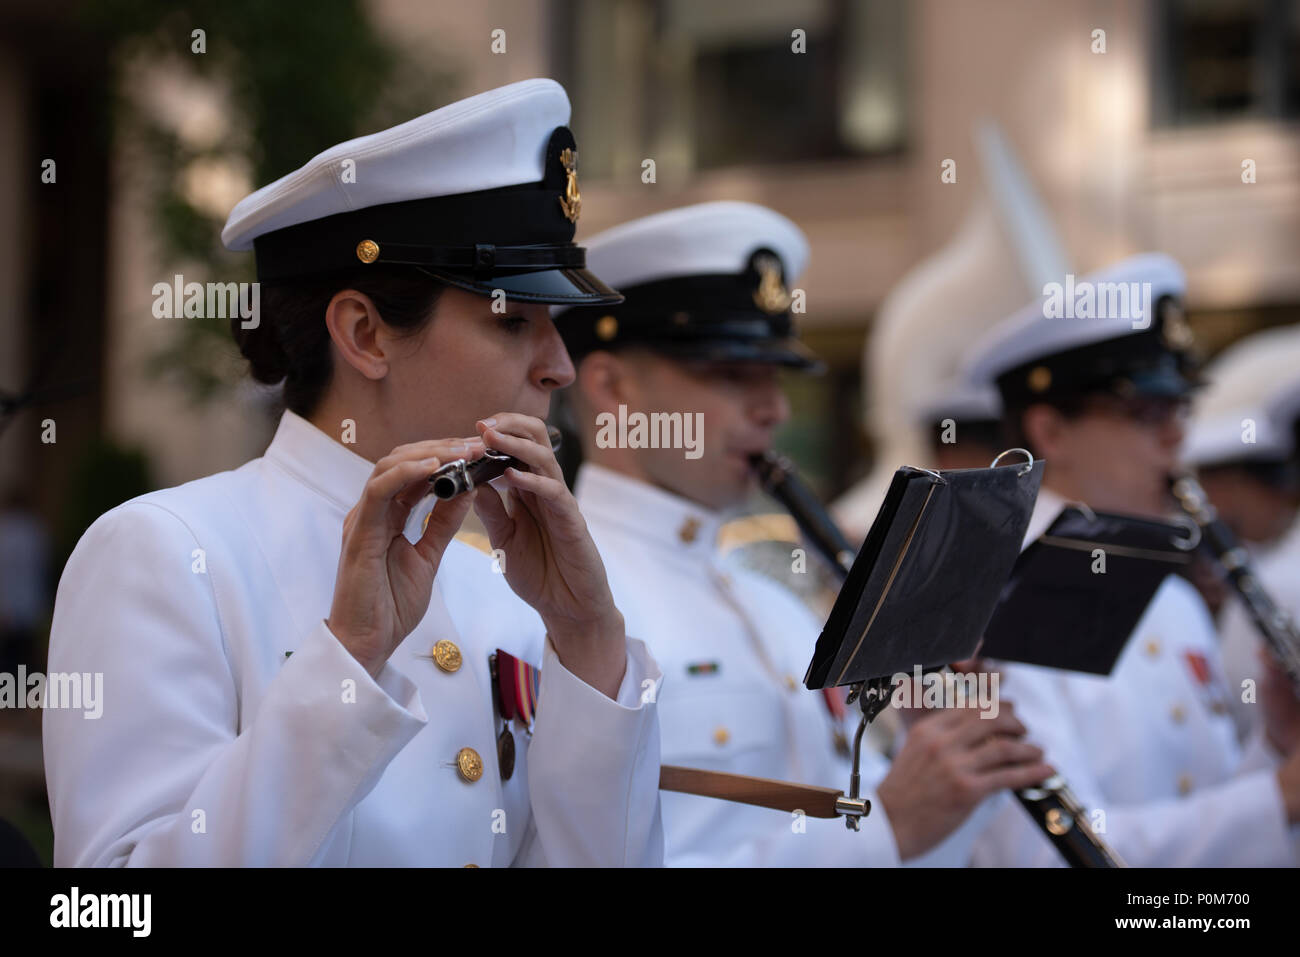 180605-N-HG258-1040 WASHINGTON (June 5, 2018) Musician 1st Class Brittany Foster, piccolo instrumentalist with the U.S. Navy Ceremonial band performs at the U.S. Navy Memorial in Washington, D.C., during the commemoration of the 76th anniversary of the Battle of Midway. The Battle of Midway began on June 4 in 1942 and stands as one of the U.S. Navy's most historically significant naval battles. Fought on the high seas of the Pacific more than half a century ago, this battle altered the course of the war in the Pacific and thereby shaped the outcome of world events. (U.S. Navy photo by Senior C - Stock Image